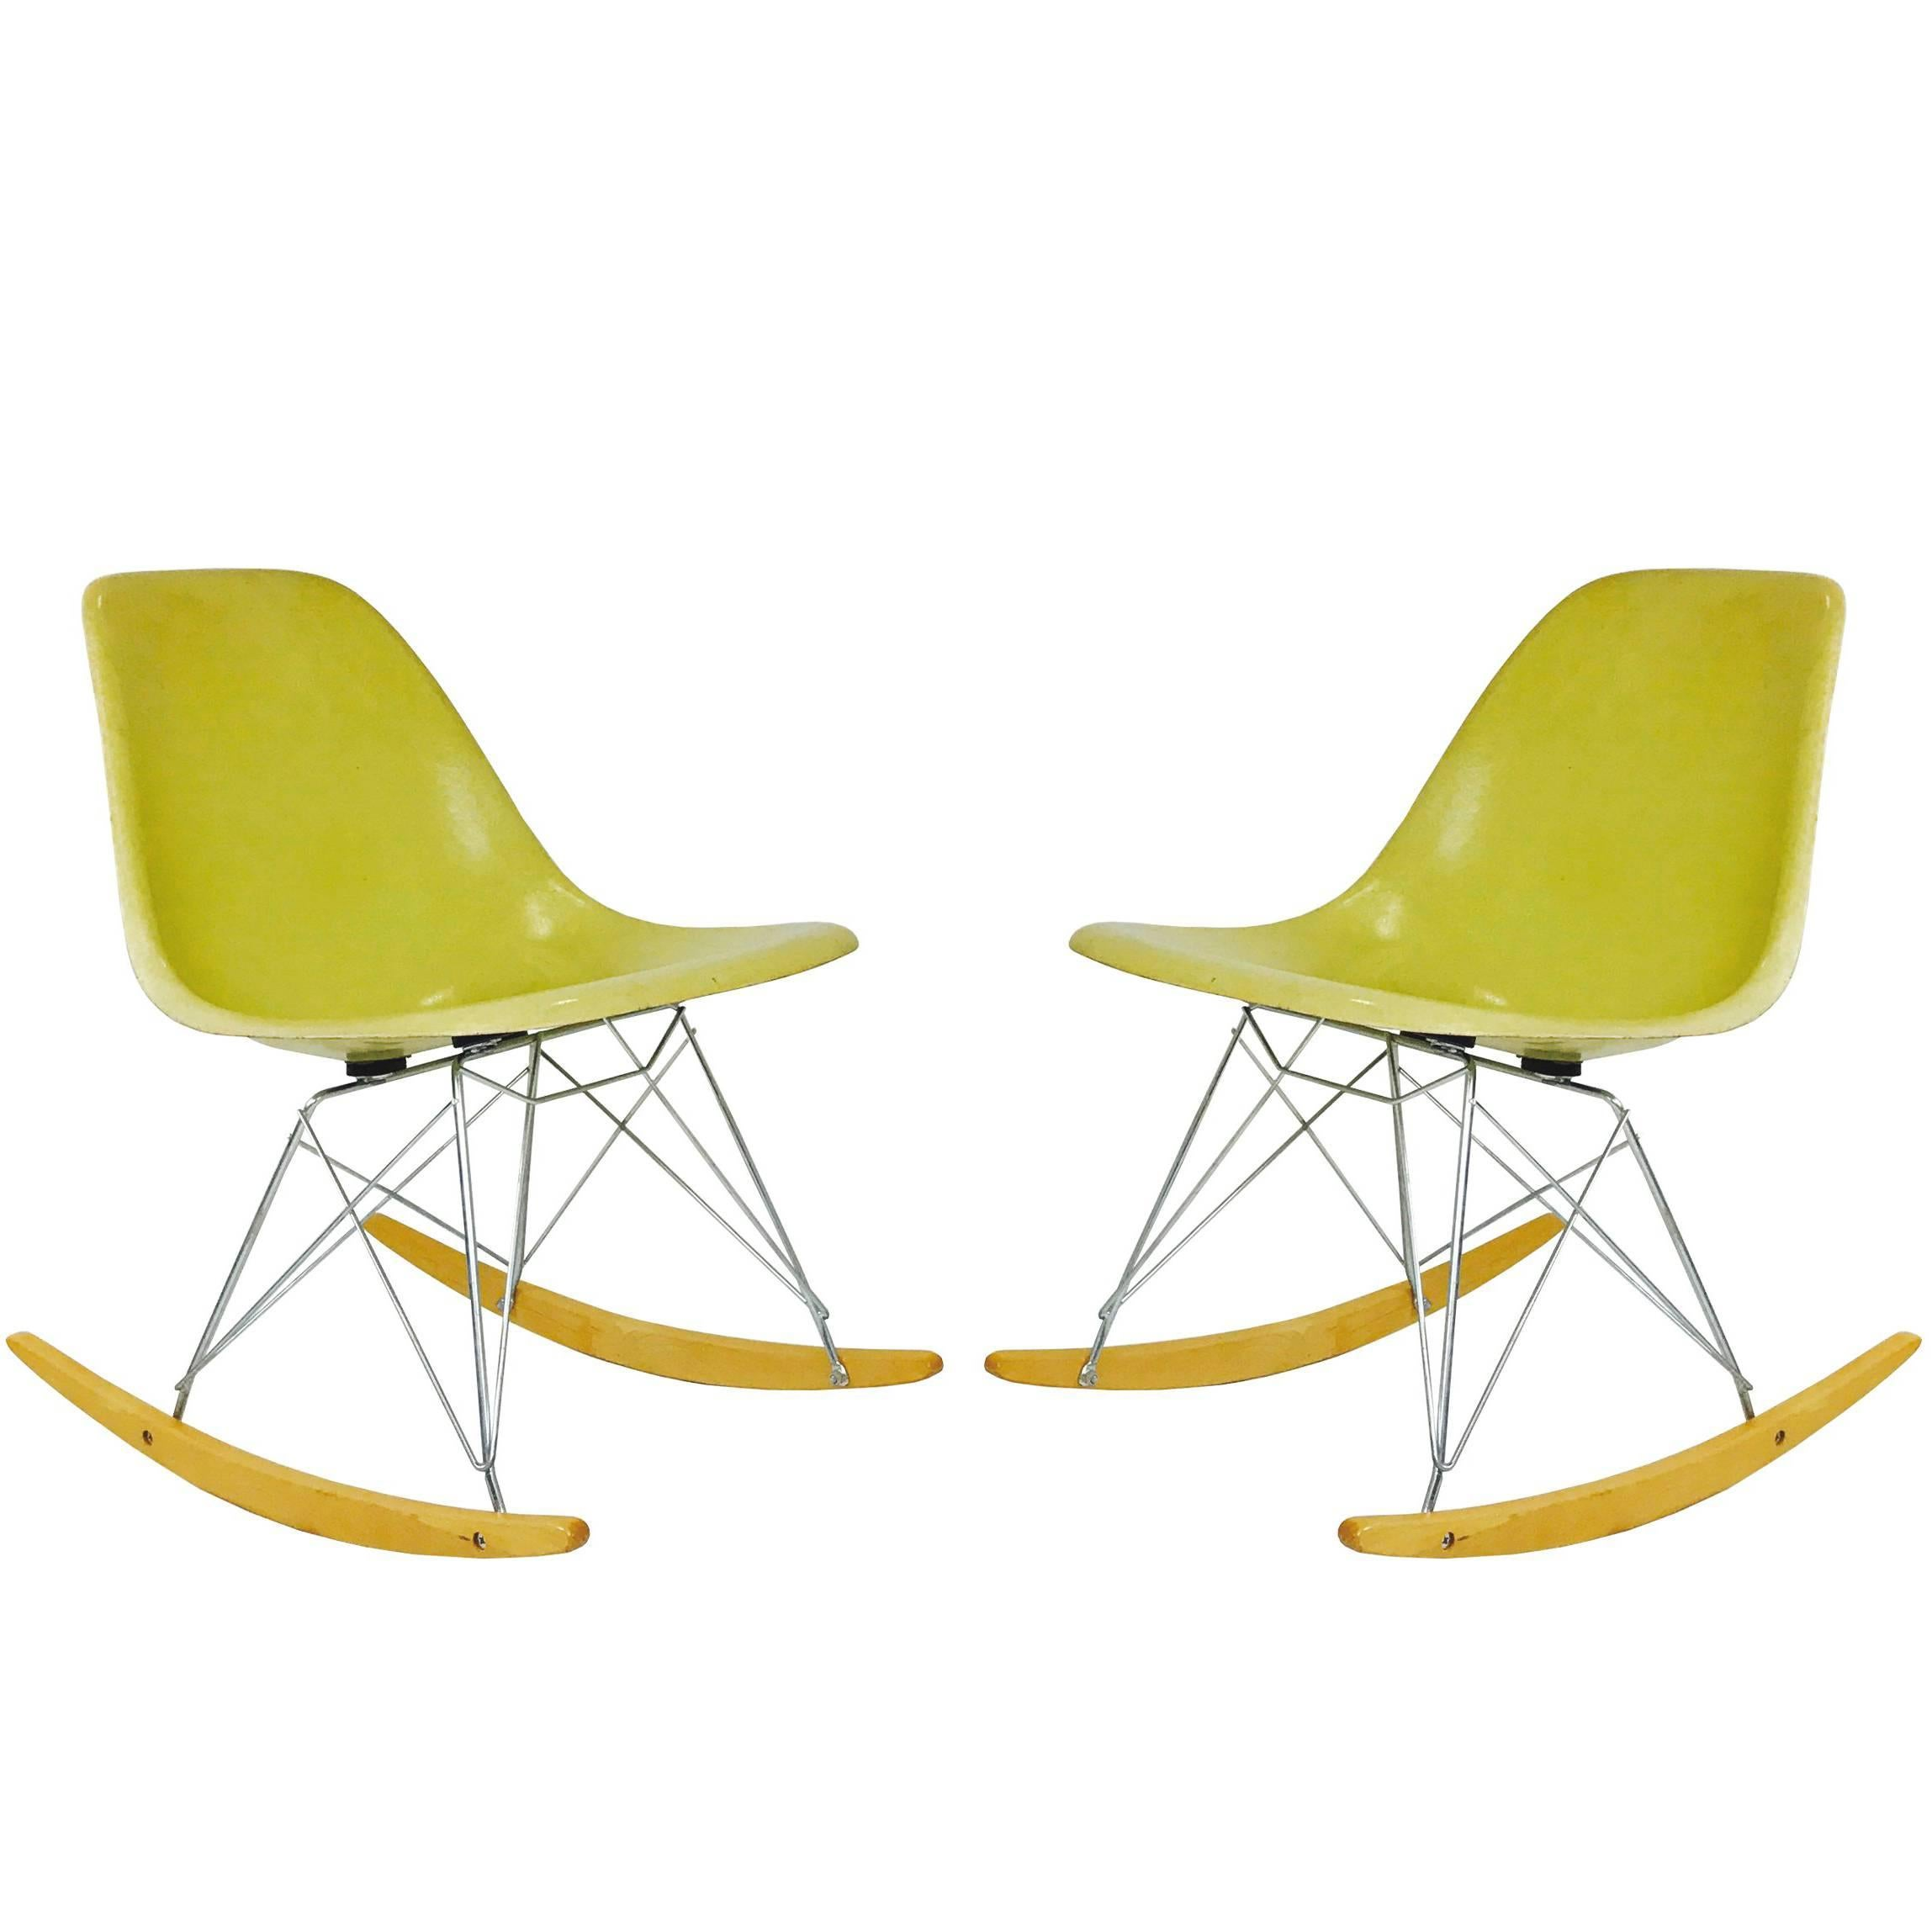 Pair Of Molded Fiberglass Eames Chairs For Herman Miller 1